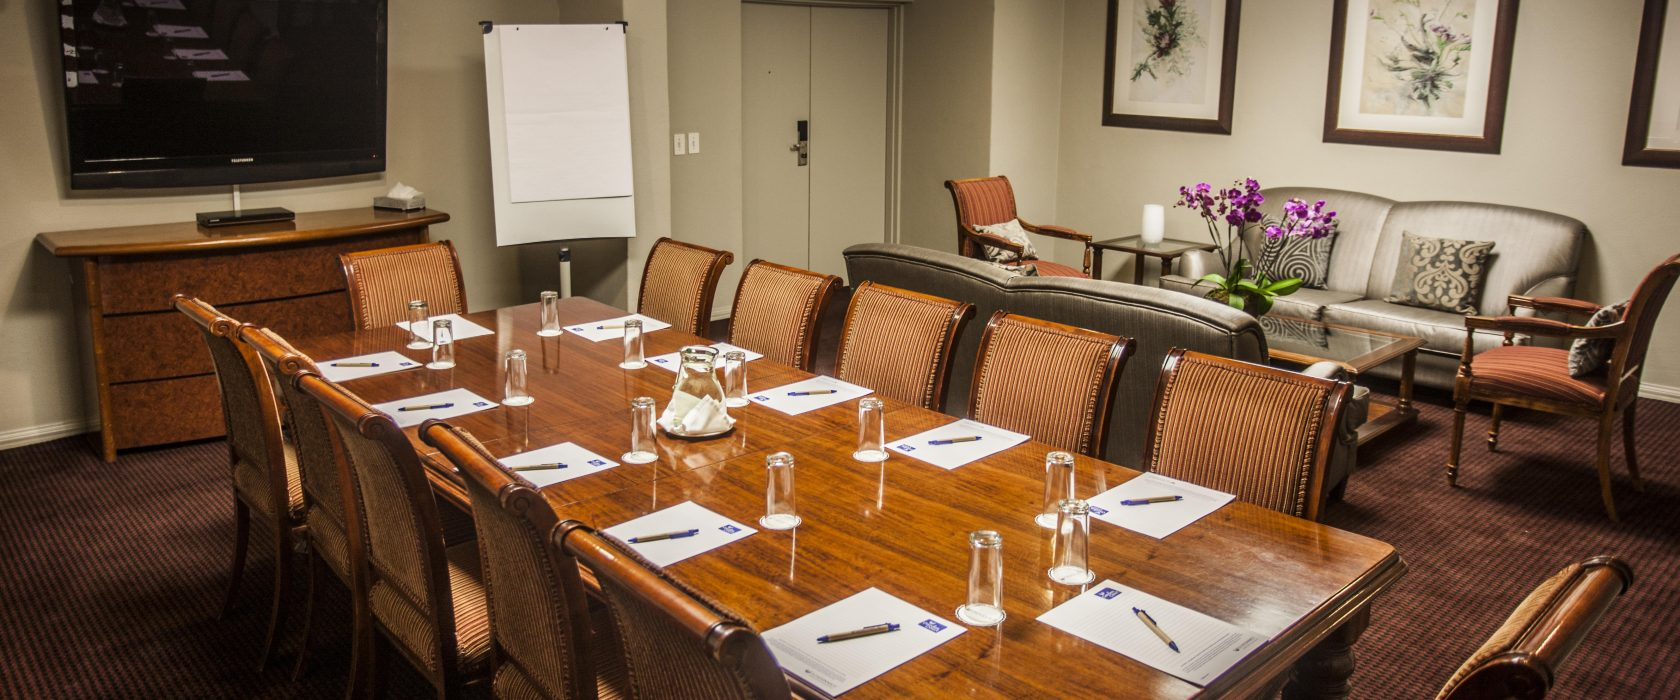 Garden Court Morningside Sandton conference room